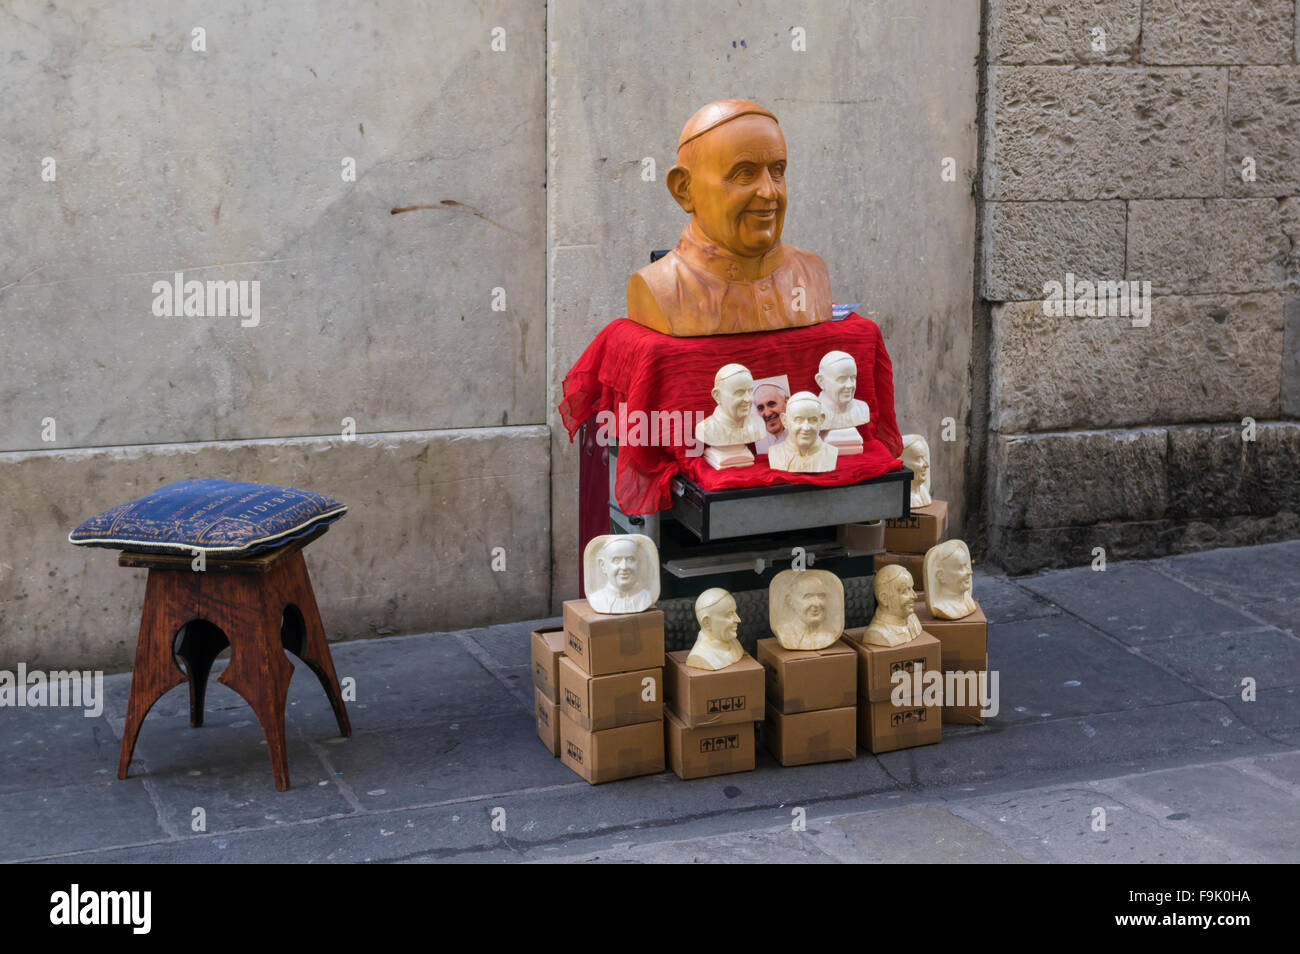 Busts of Pope Francis on sale in Genova, Italy. - Stock Image